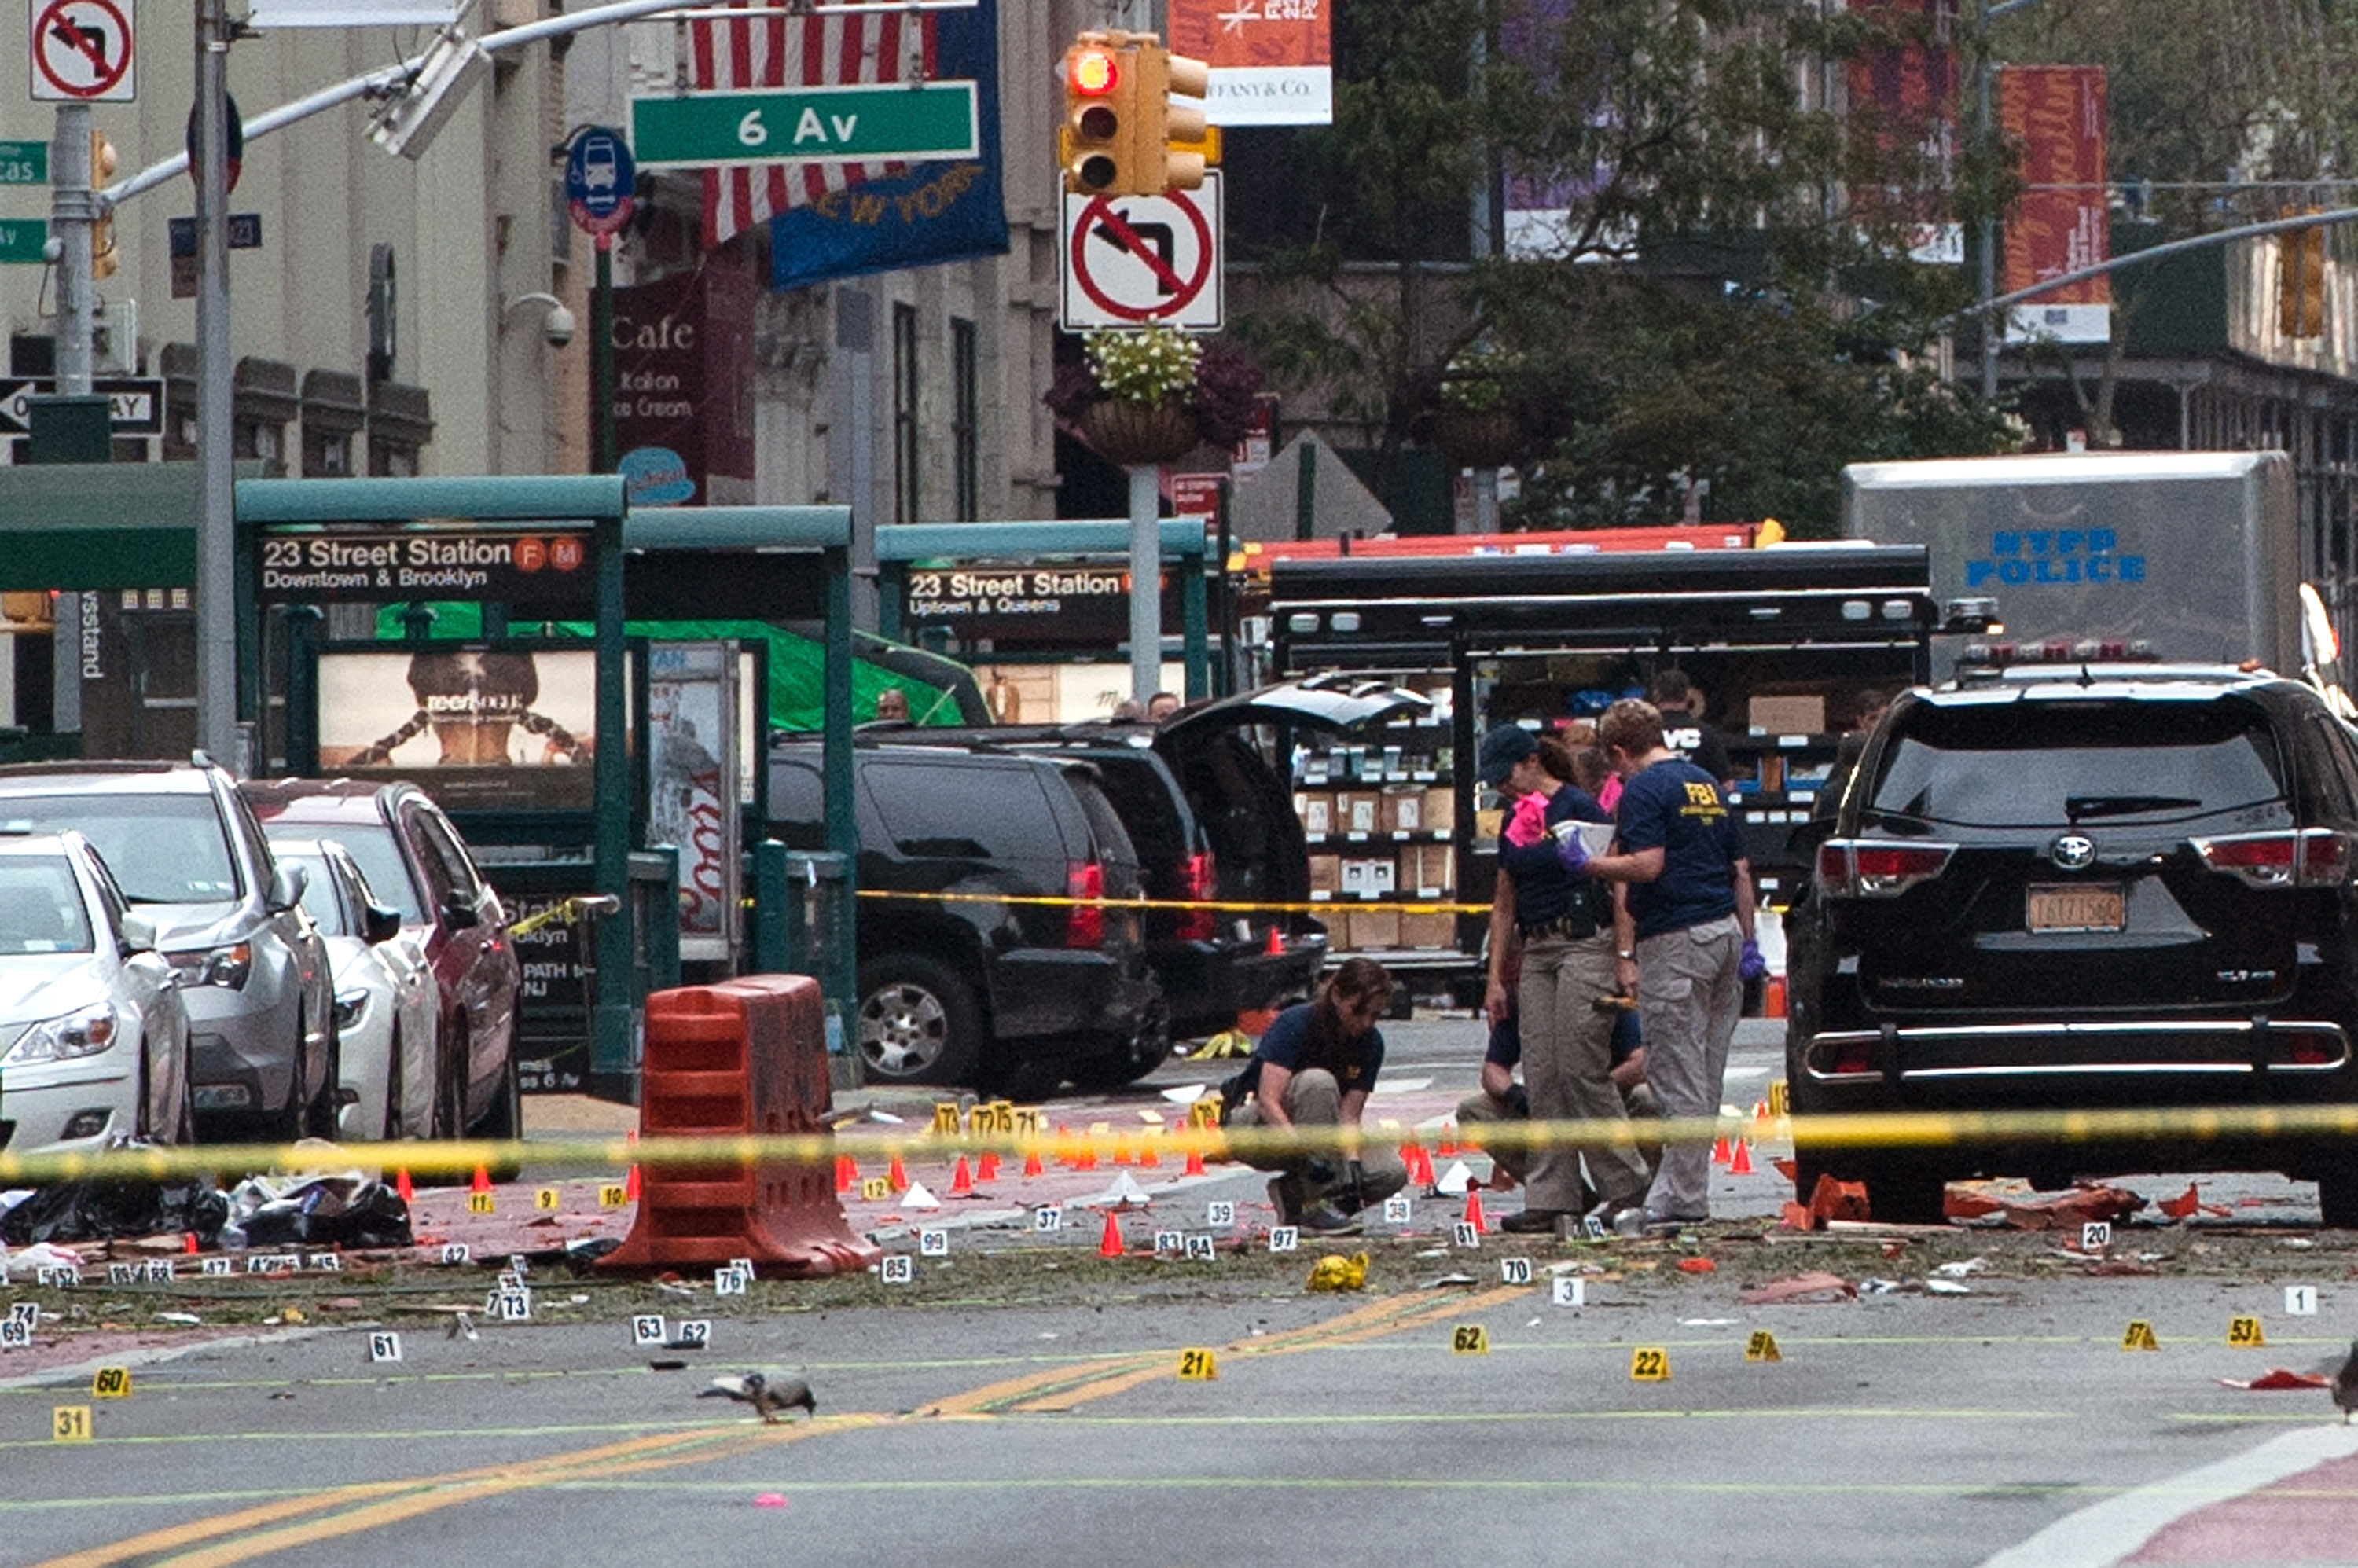 FBI agents review the crime scene of remnants of bomb debris on 23rd St. in Manhattan's Chelsea neighborhood on Sept. 18, 2016 in New York City.